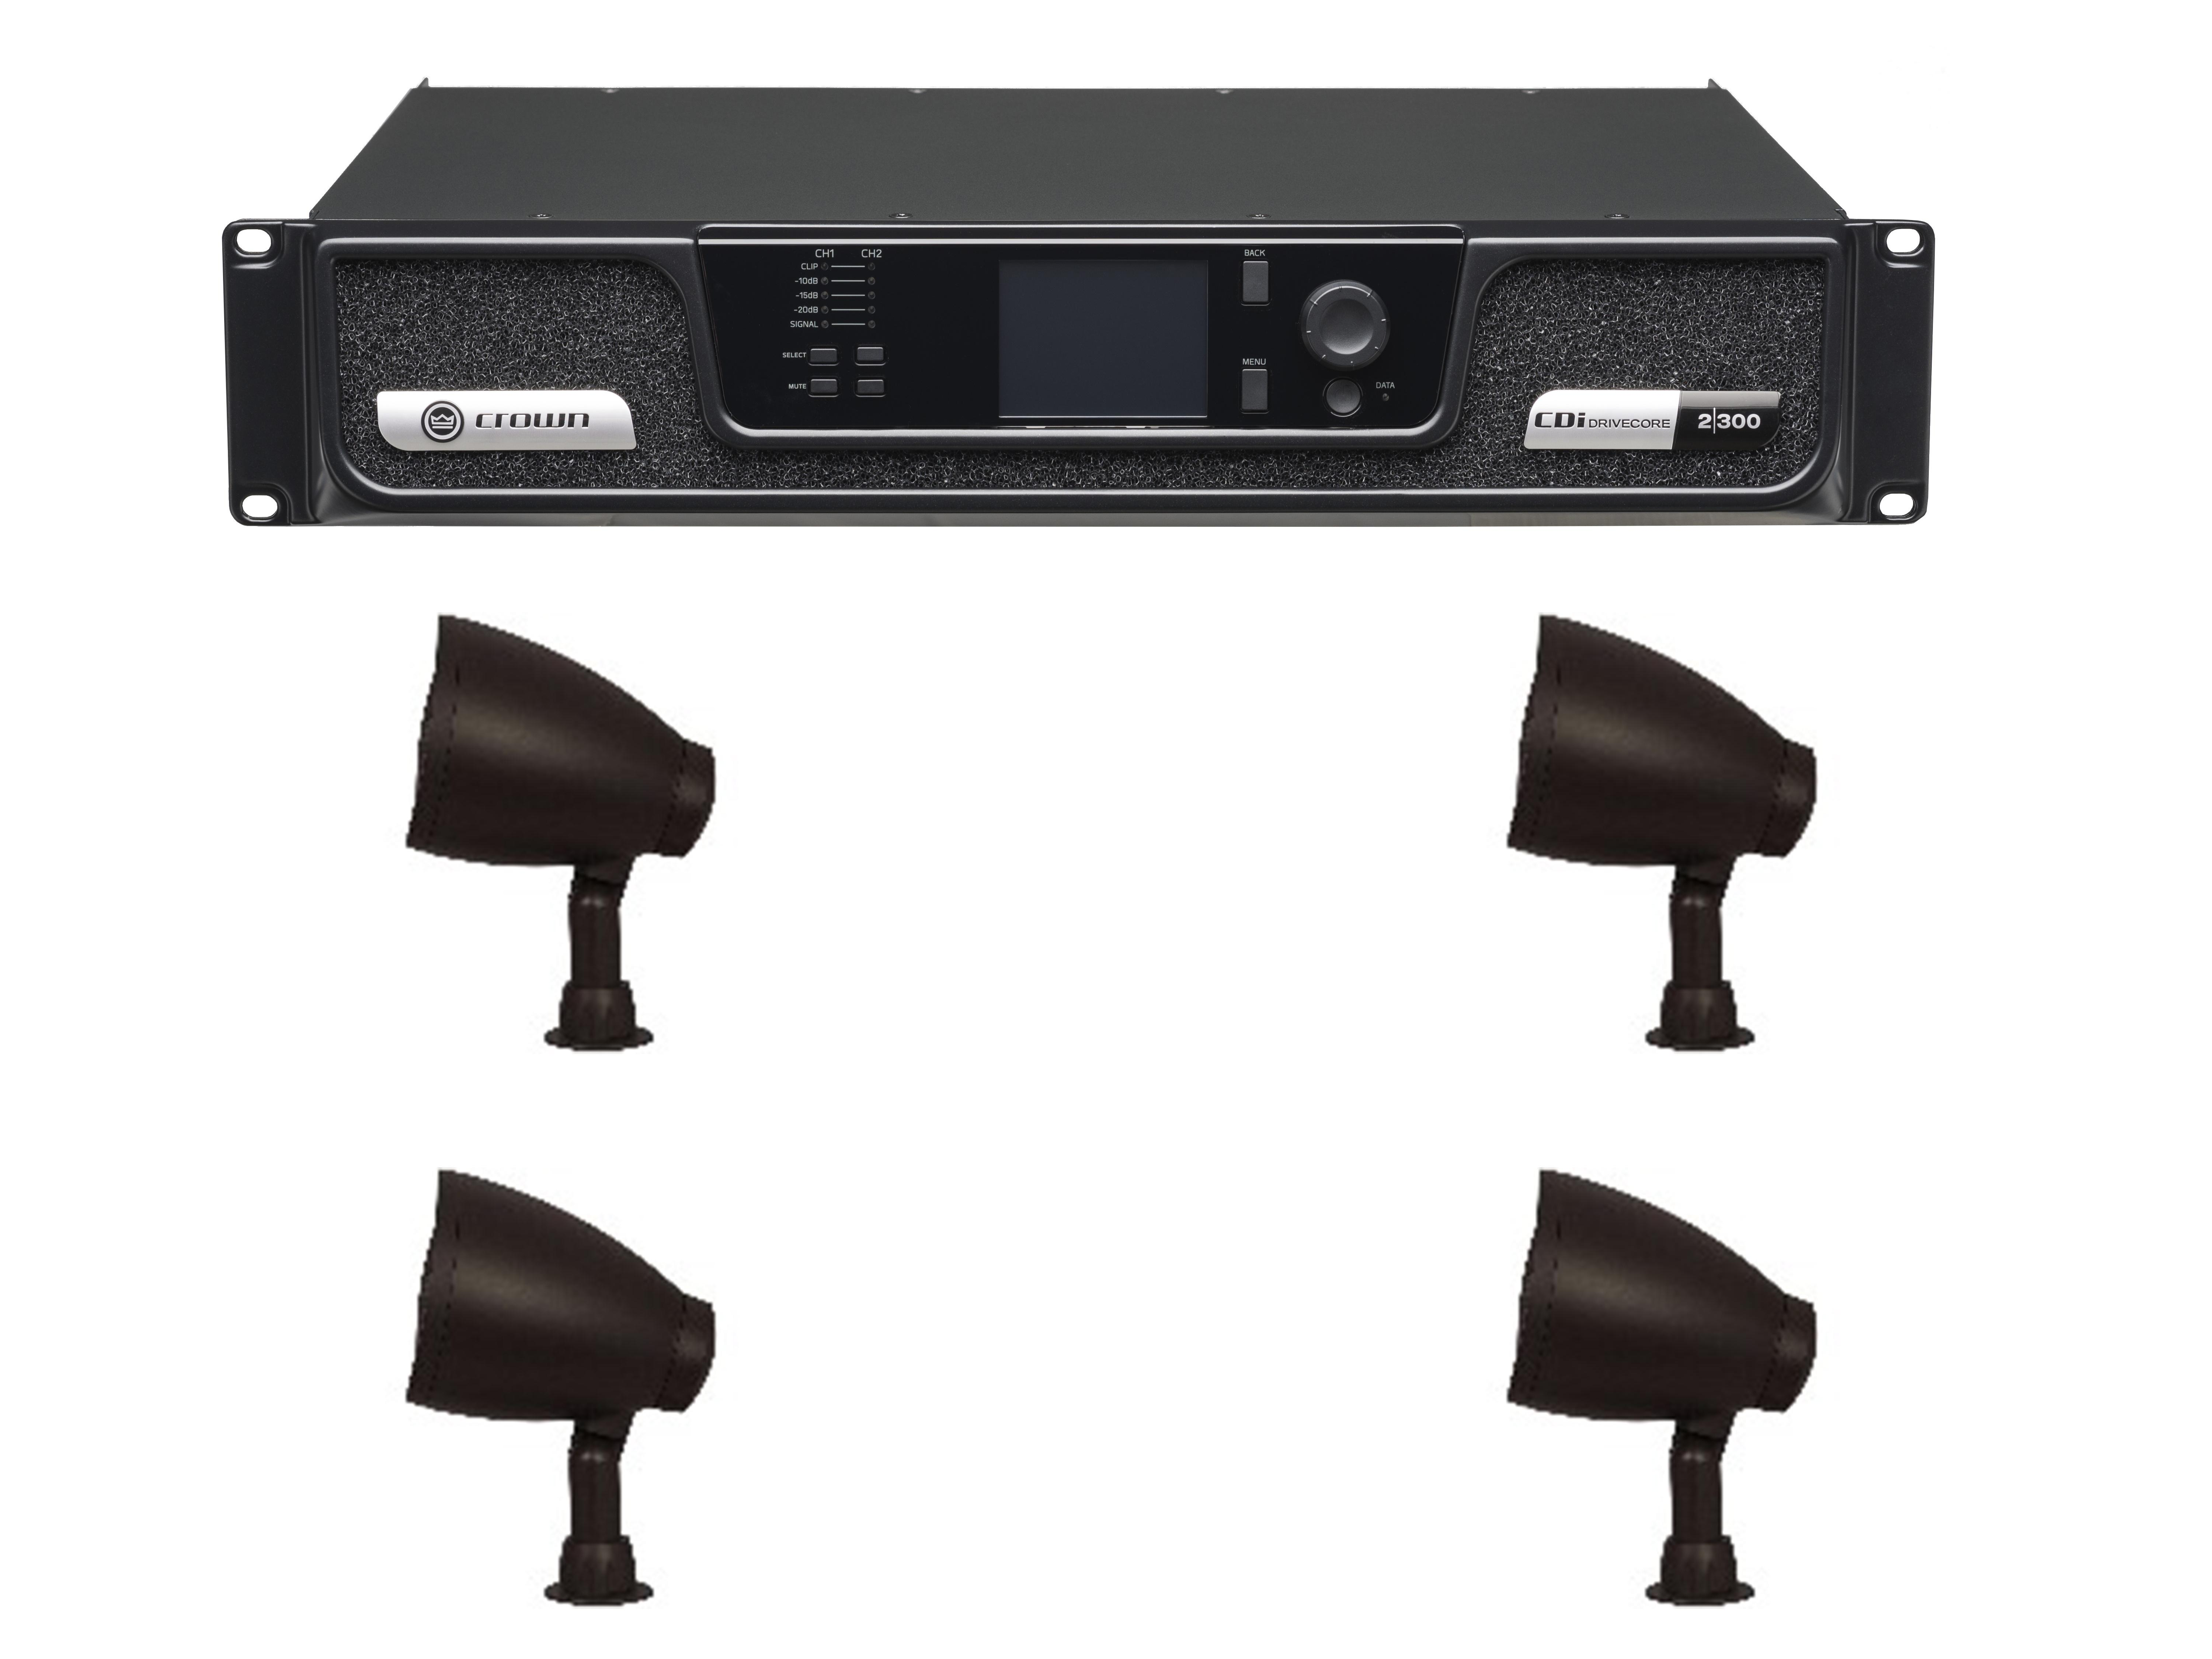 Niles NI-GS-6-KIT Outdoor Sound System with Crown CDi 2/300 Amplifier and NI-GS-6 Speaker